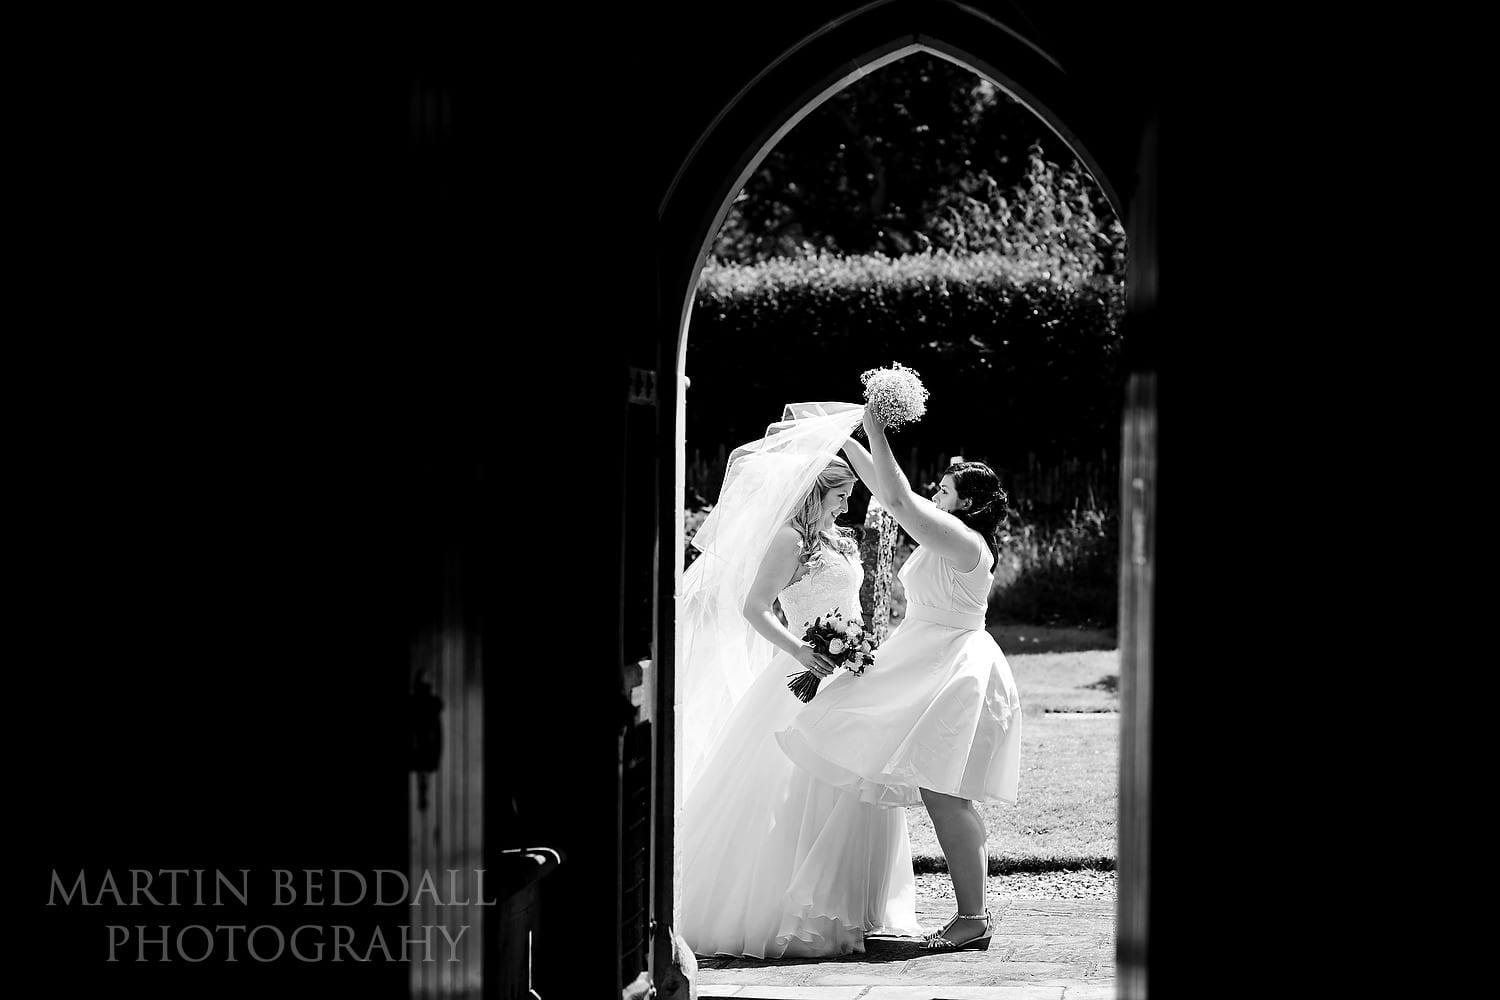 Bride's sister helps fix her veil in the wind